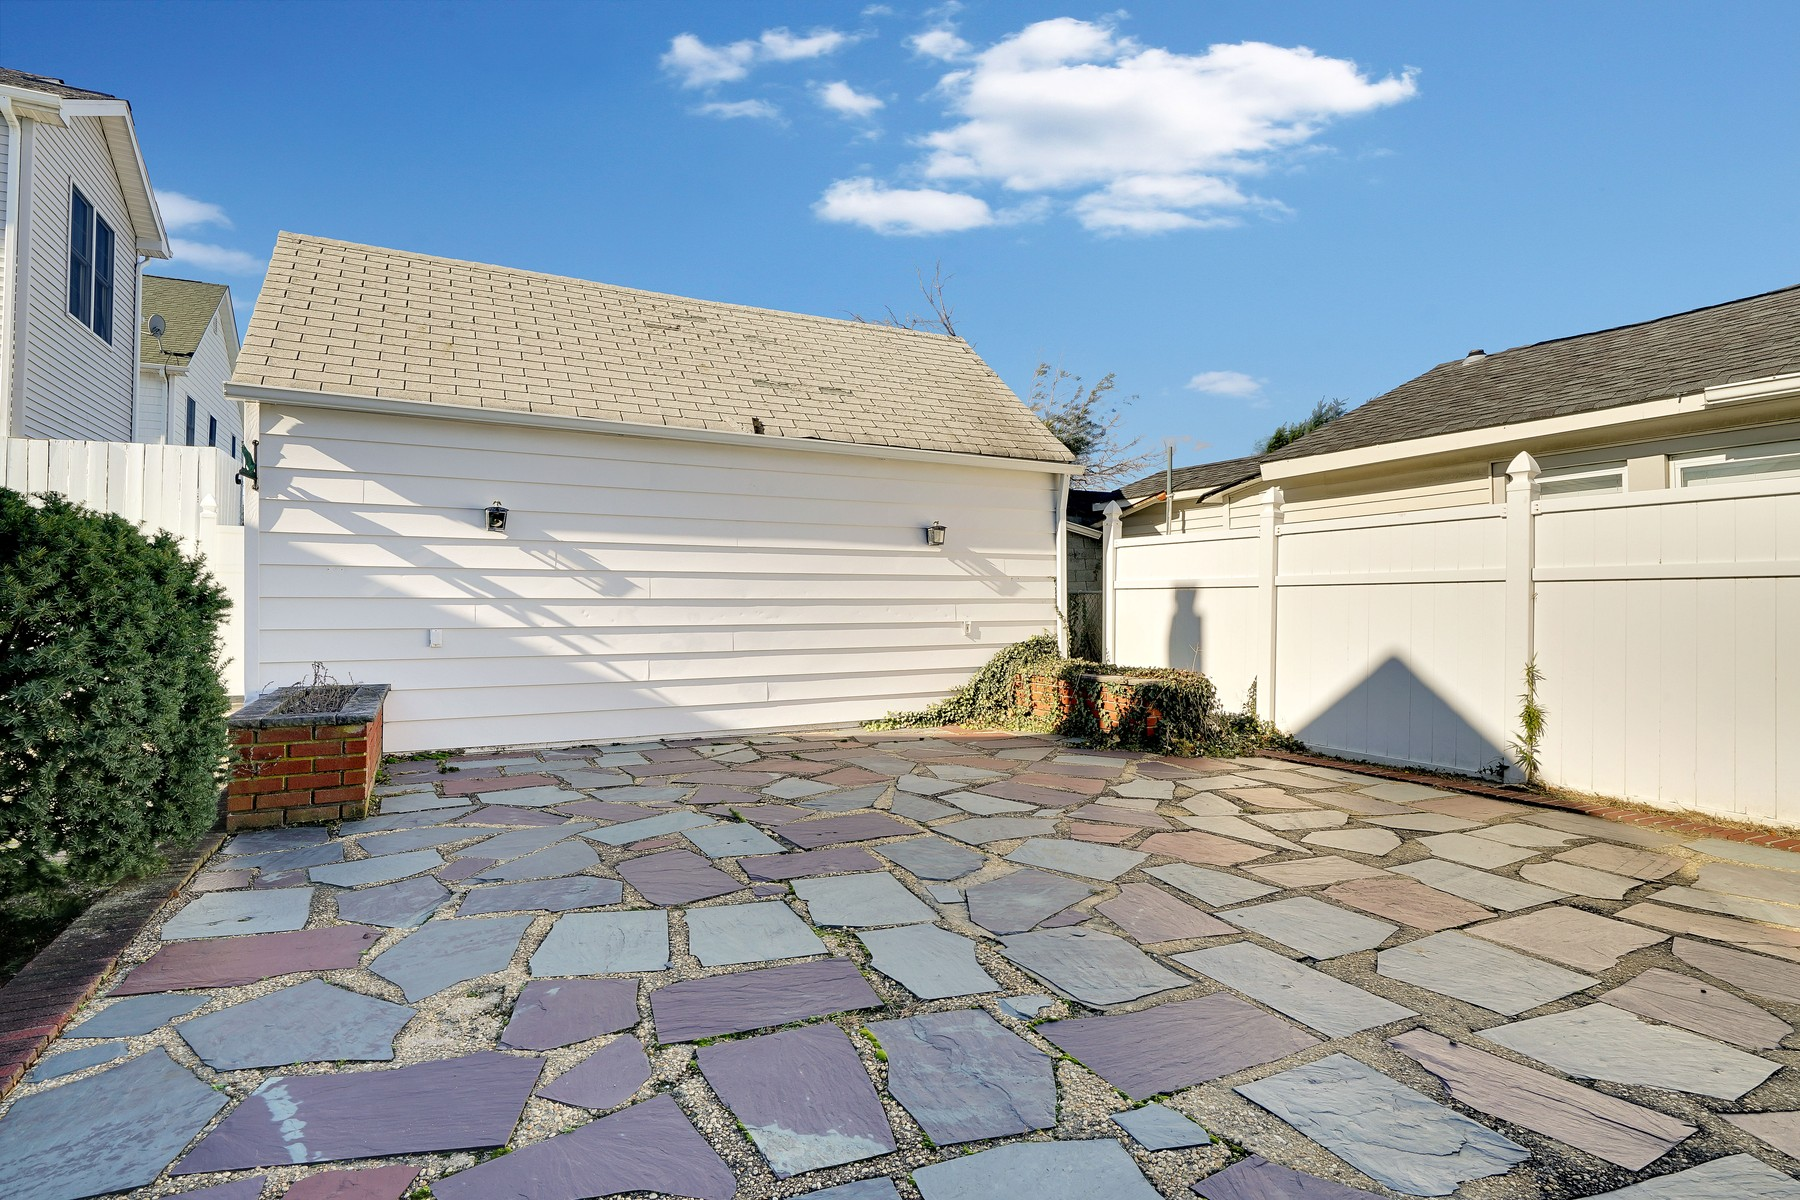 Additional photo for property listing at Seashore Home 418 15th Ave Belmar, New Jersey 07719 United States